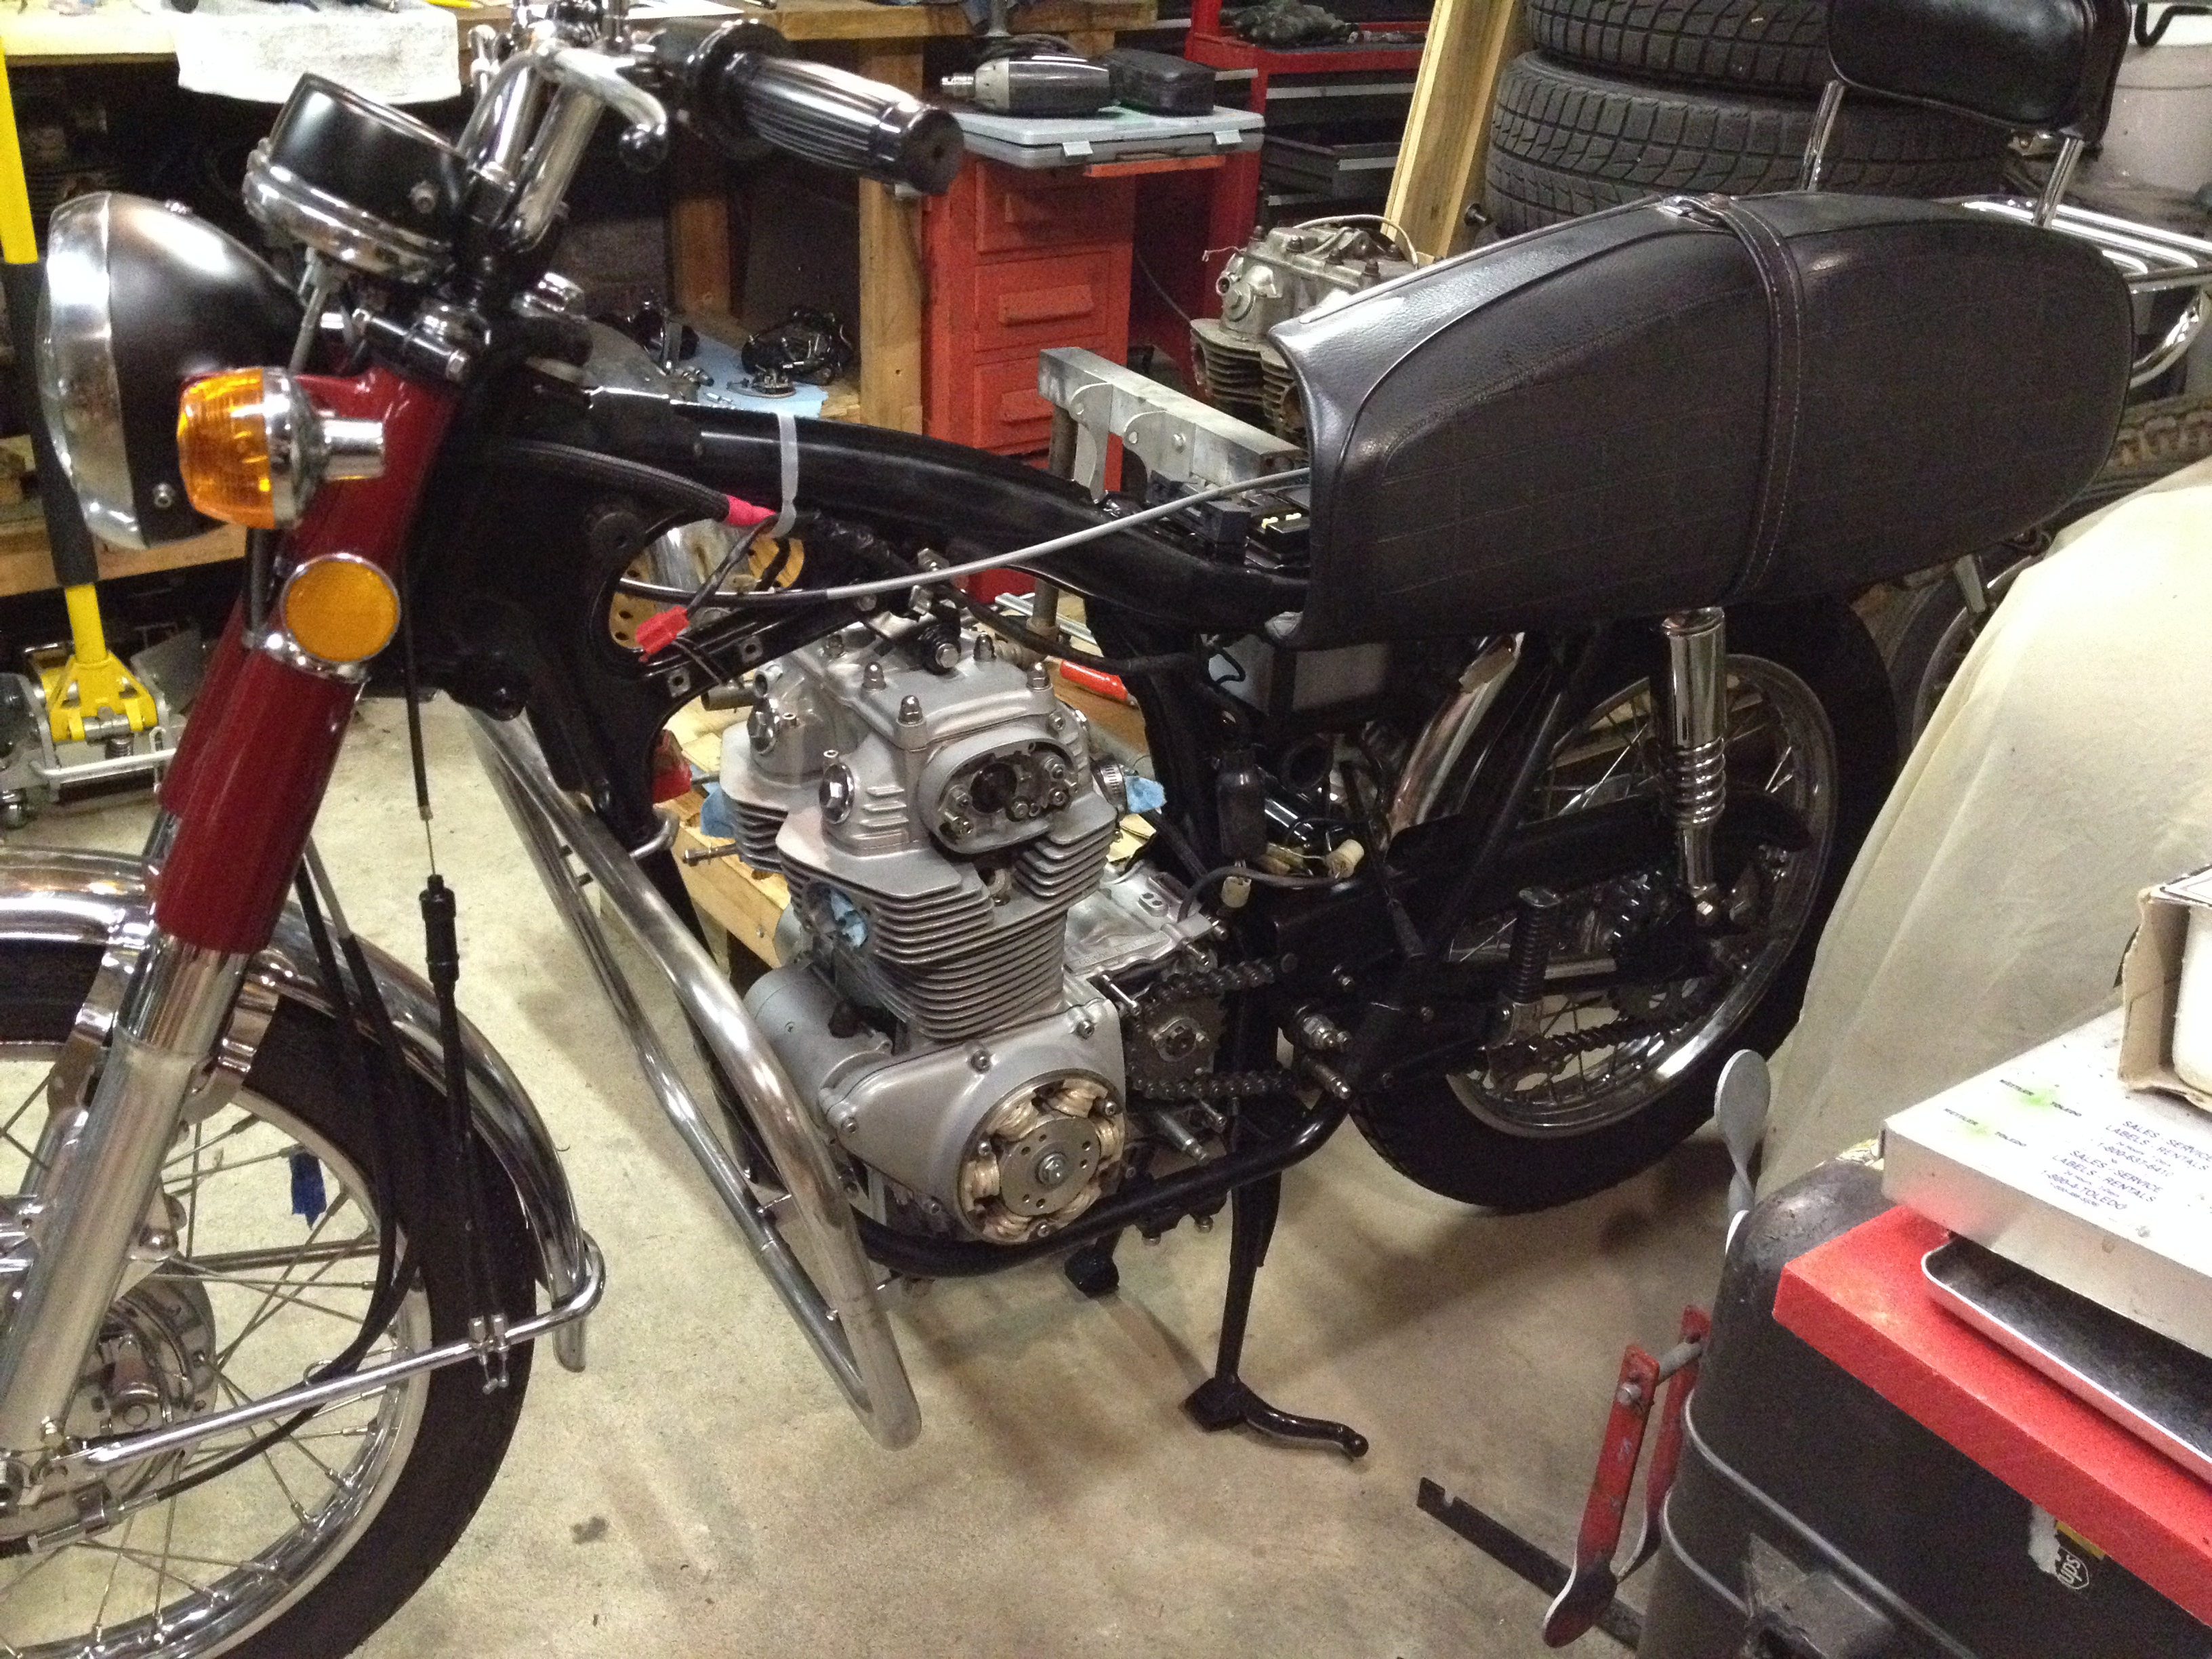 honda cl 350 wiring cb350 electrical trouble help  honda twins  cb350 electrical trouble help  honda